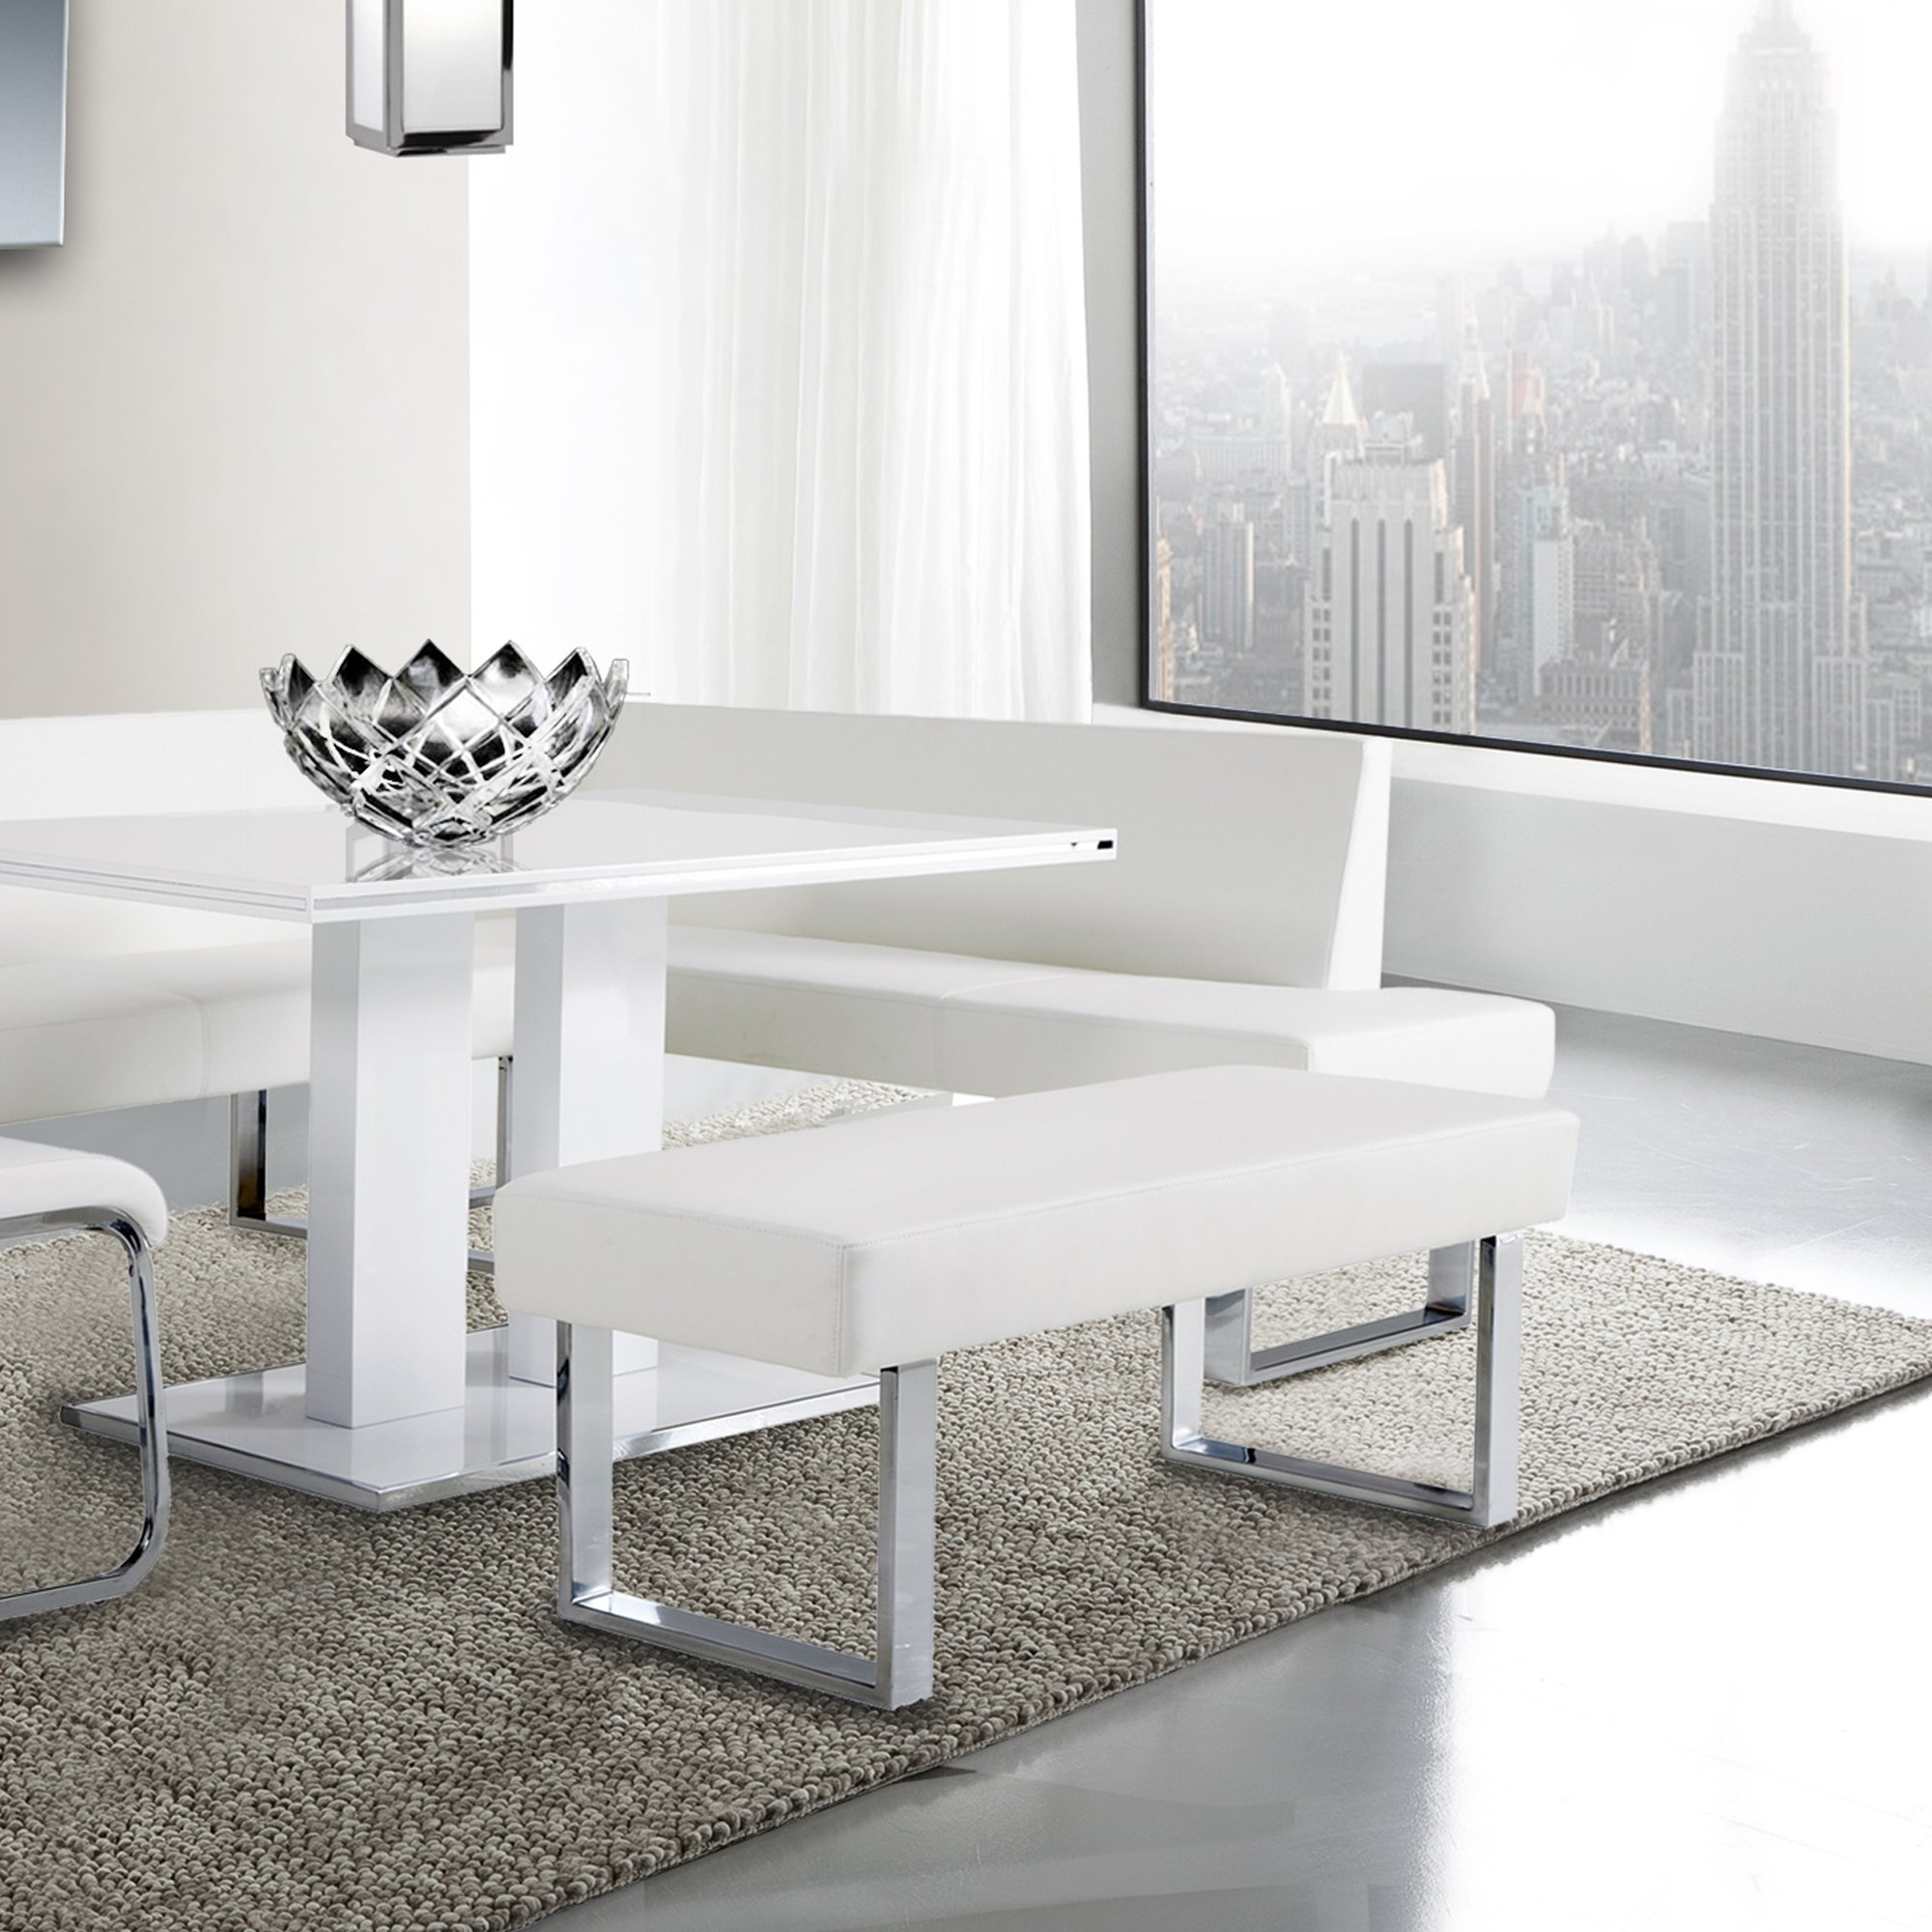 Armen Living  Amanda Bench in White and Chrome Finish by Armen Living